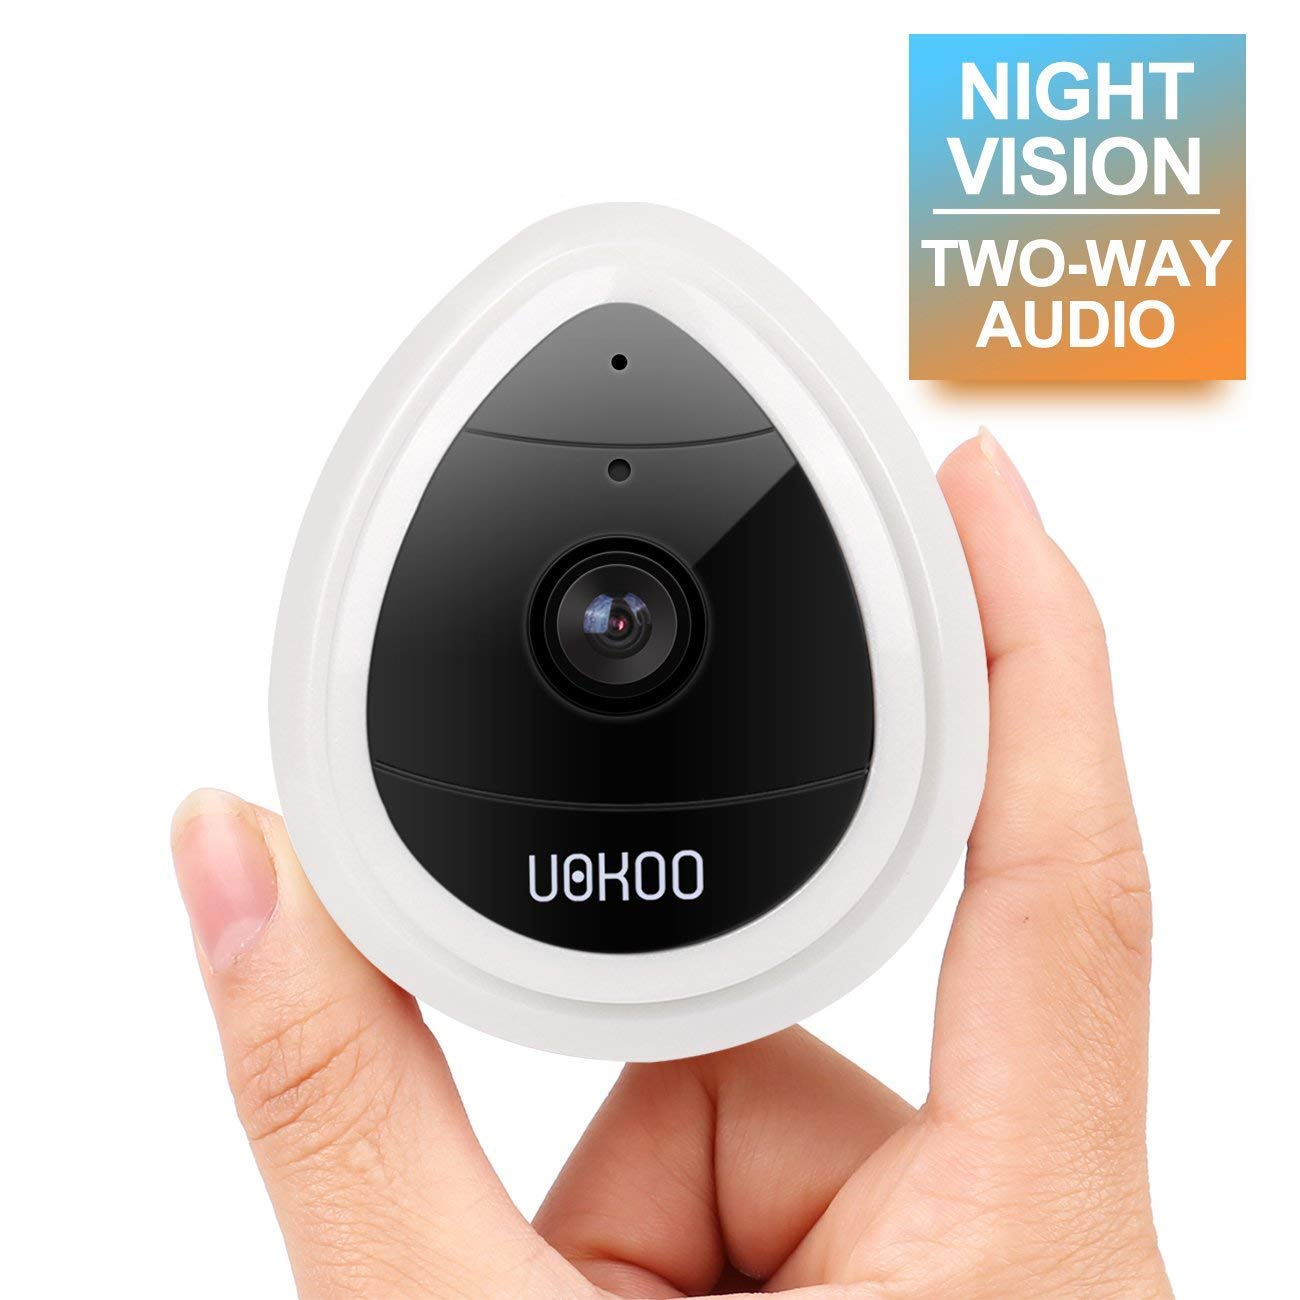 Wireless Security Camera, Wireless IP Security Surveillance System with Night Vision/Two Way Audio for Home/Office/Baby/Nanny/Pet Monitor